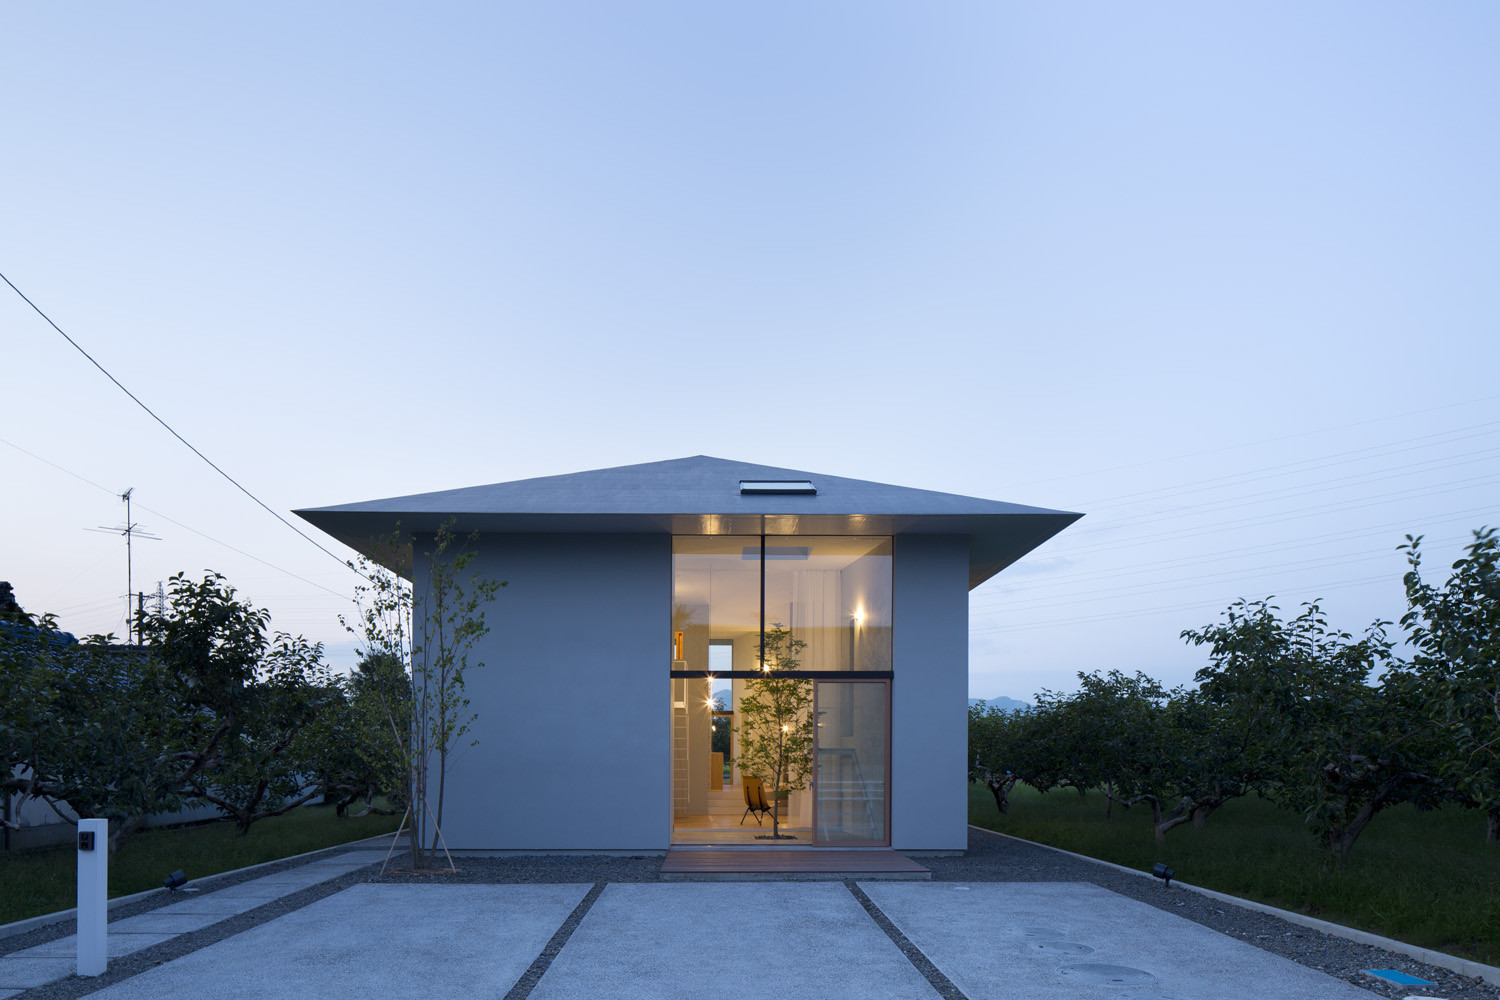 House in Ohno / Airhouse Design Office, © Toshiyuki Yano